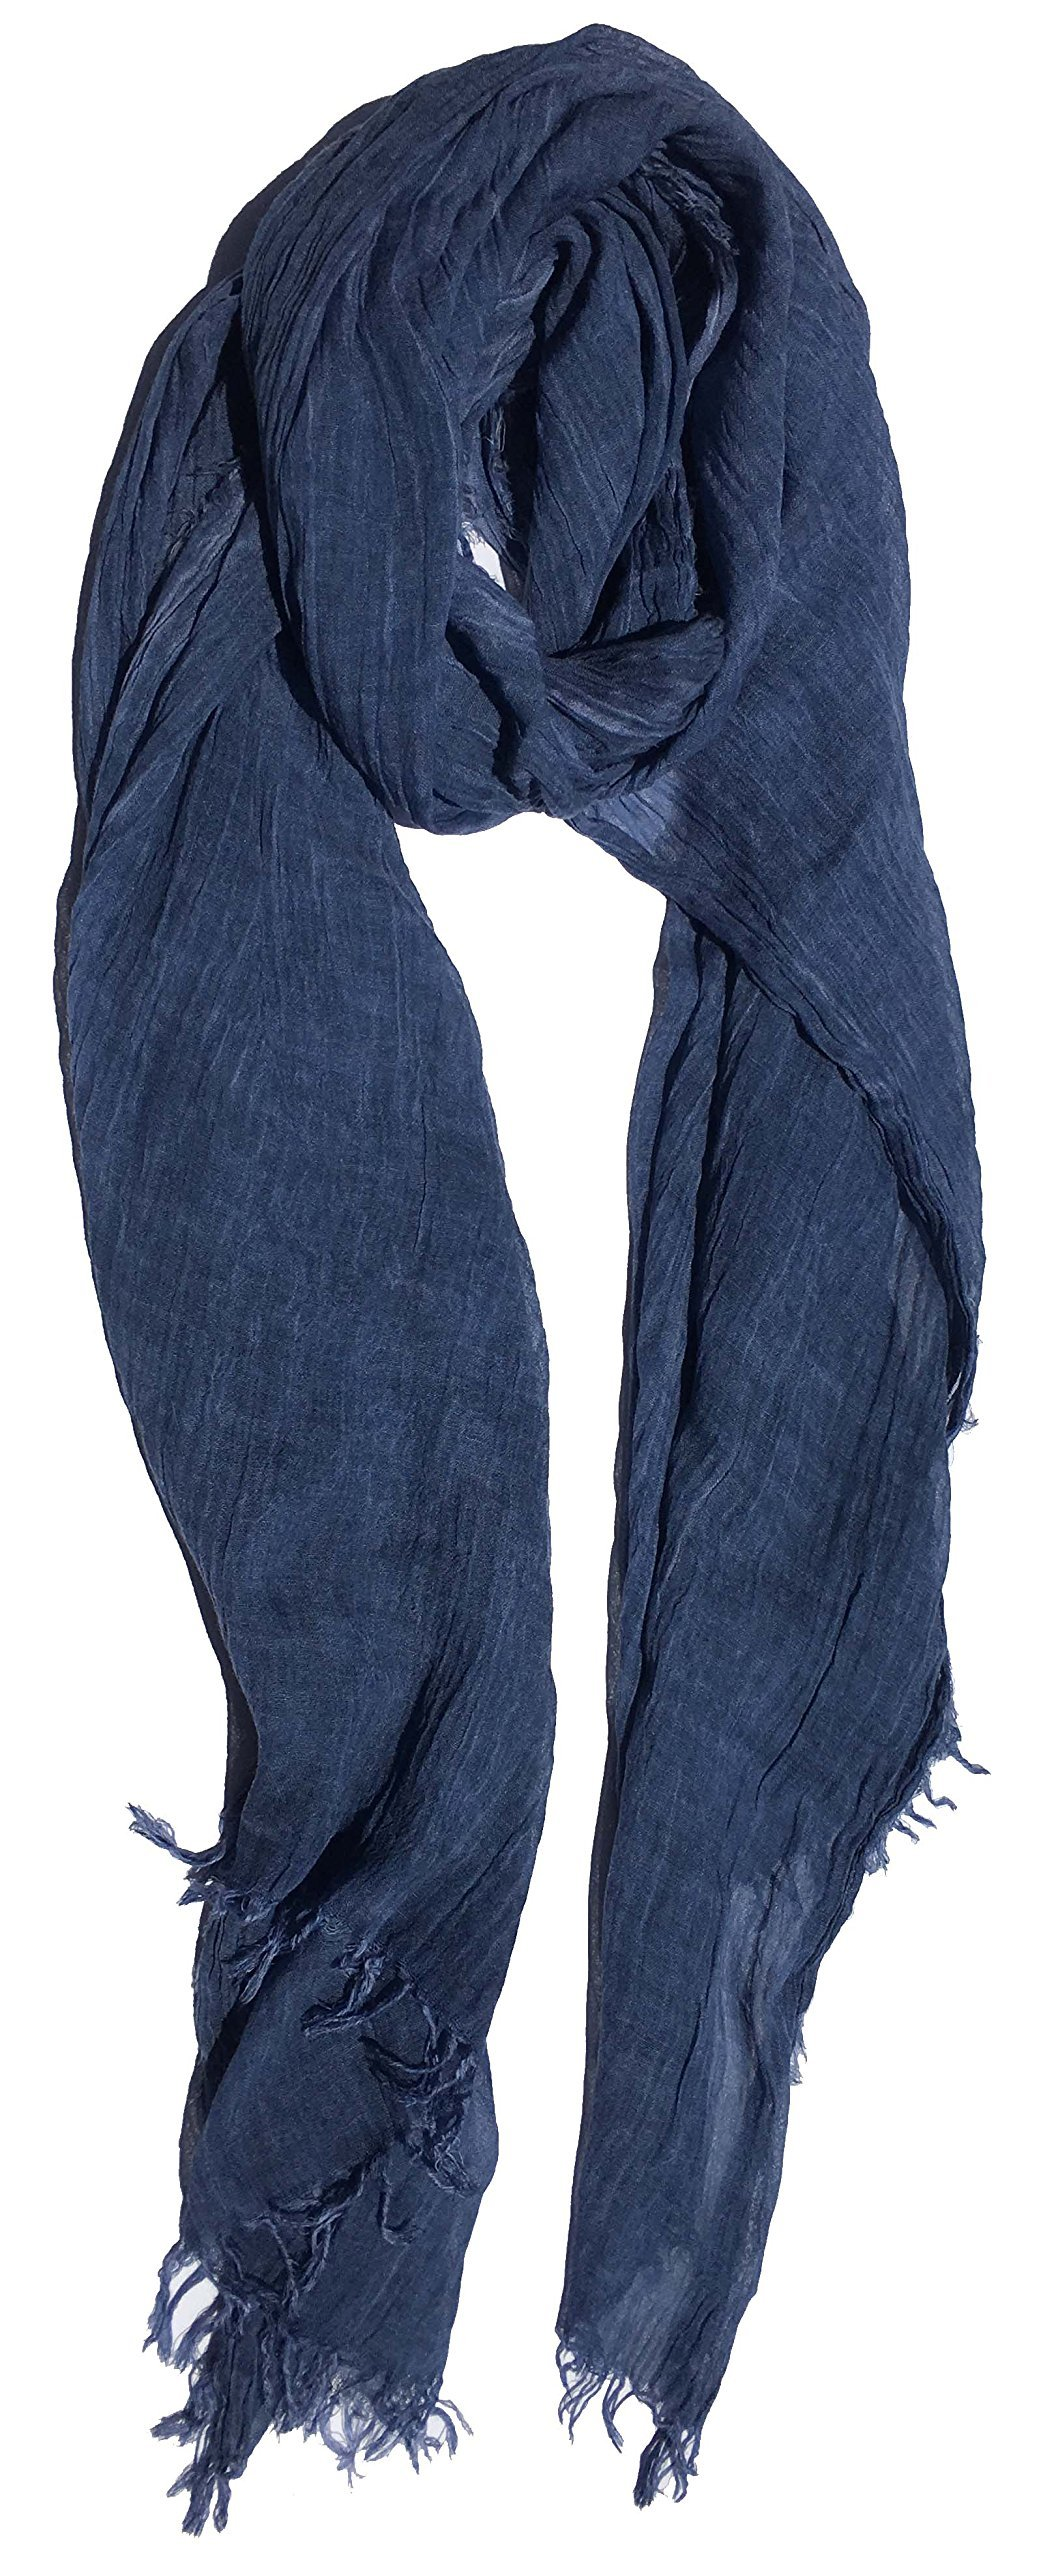 100% Pure Natural Cotton, No Synthetic Fibers, Unisex, Scarves - Multi Colors/Styles (Chambray Blue)